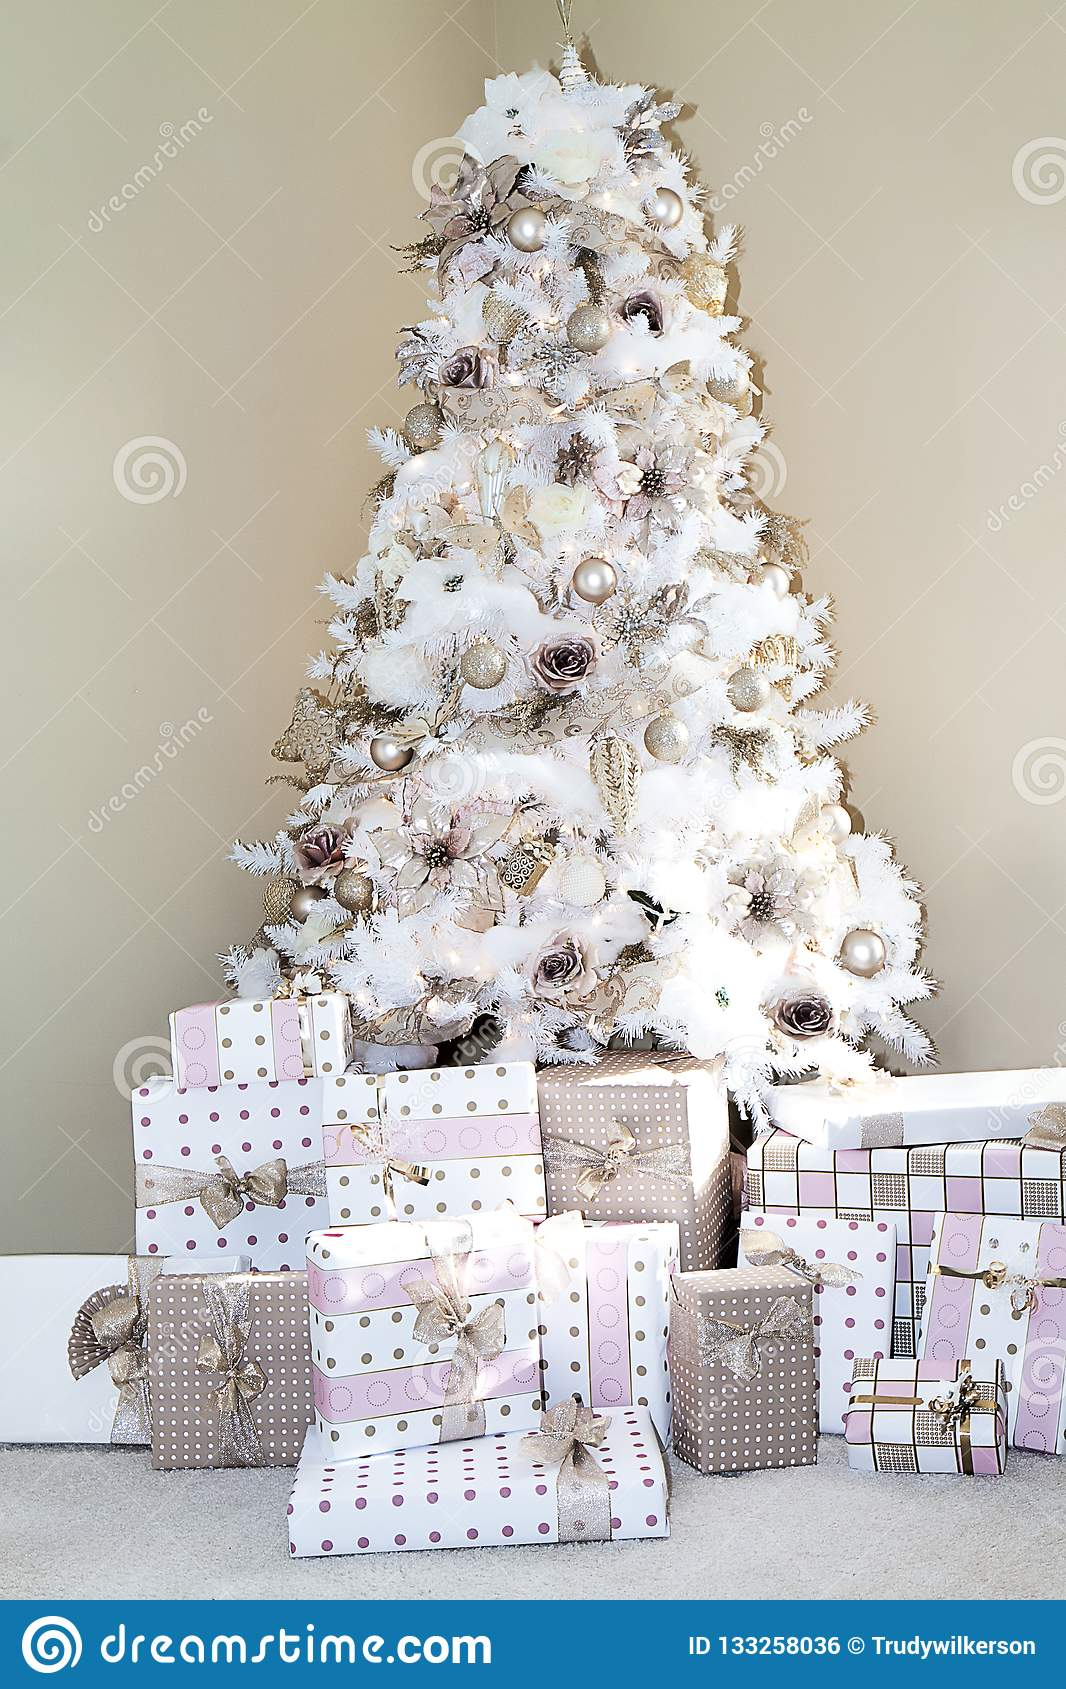 White Dreamy Christmas Tree Decorated In Blush Pink Ornaments Stock